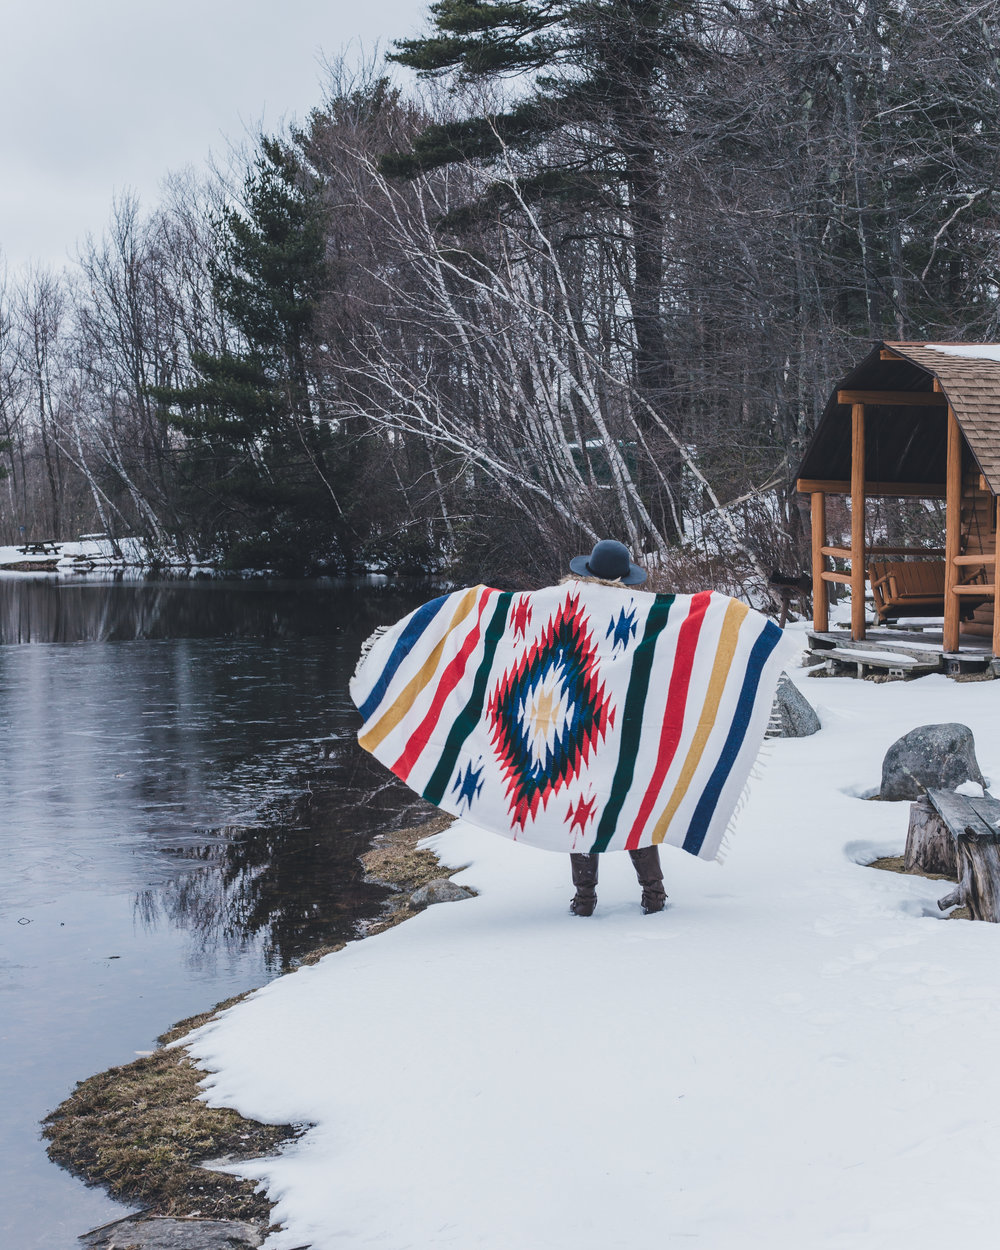 Tribe & True - White Aspen Blanket - cabin themed content curation / Instagram collaboration